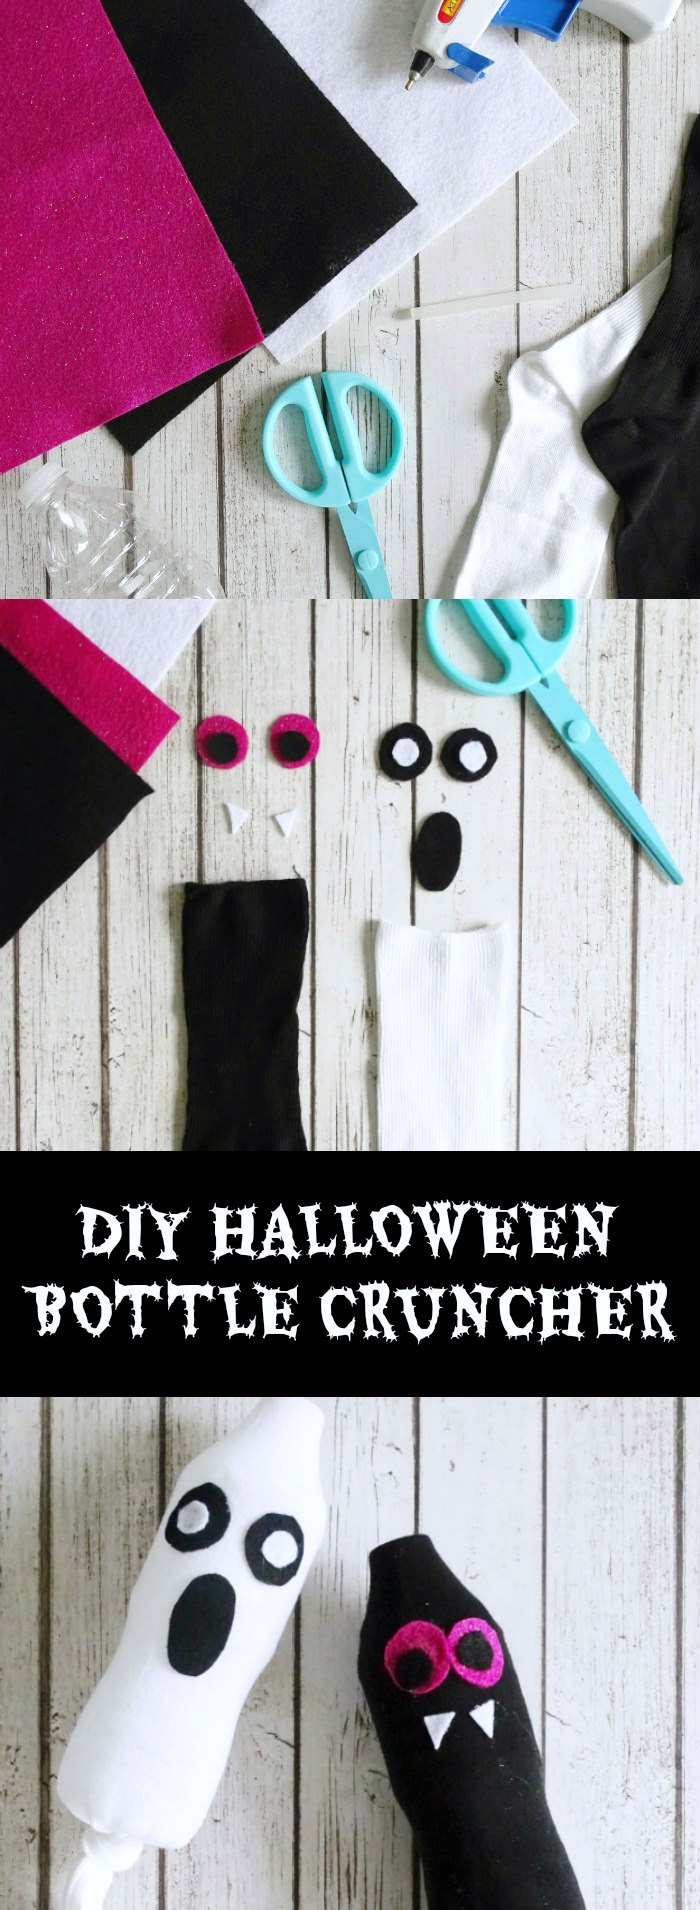 DIY Halloween Bottle Crunchers